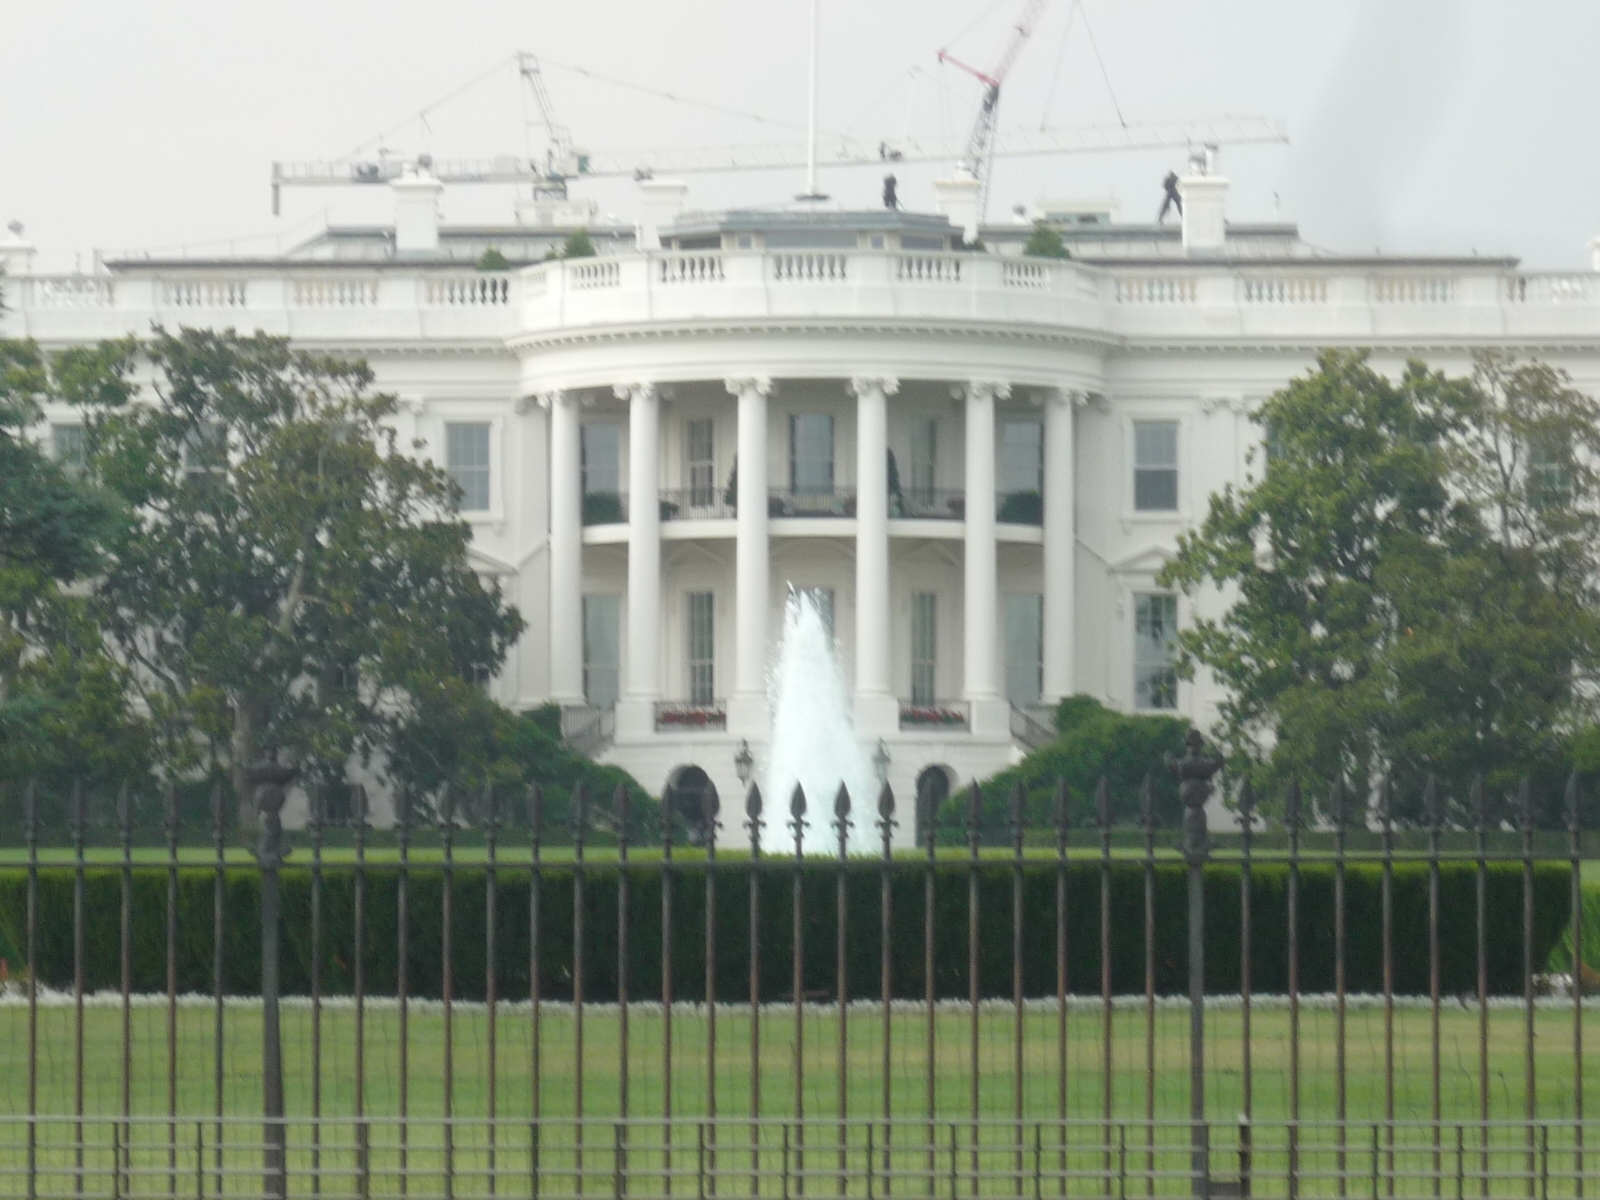 The White House - viewed from the Zero Milestone monument across E Street